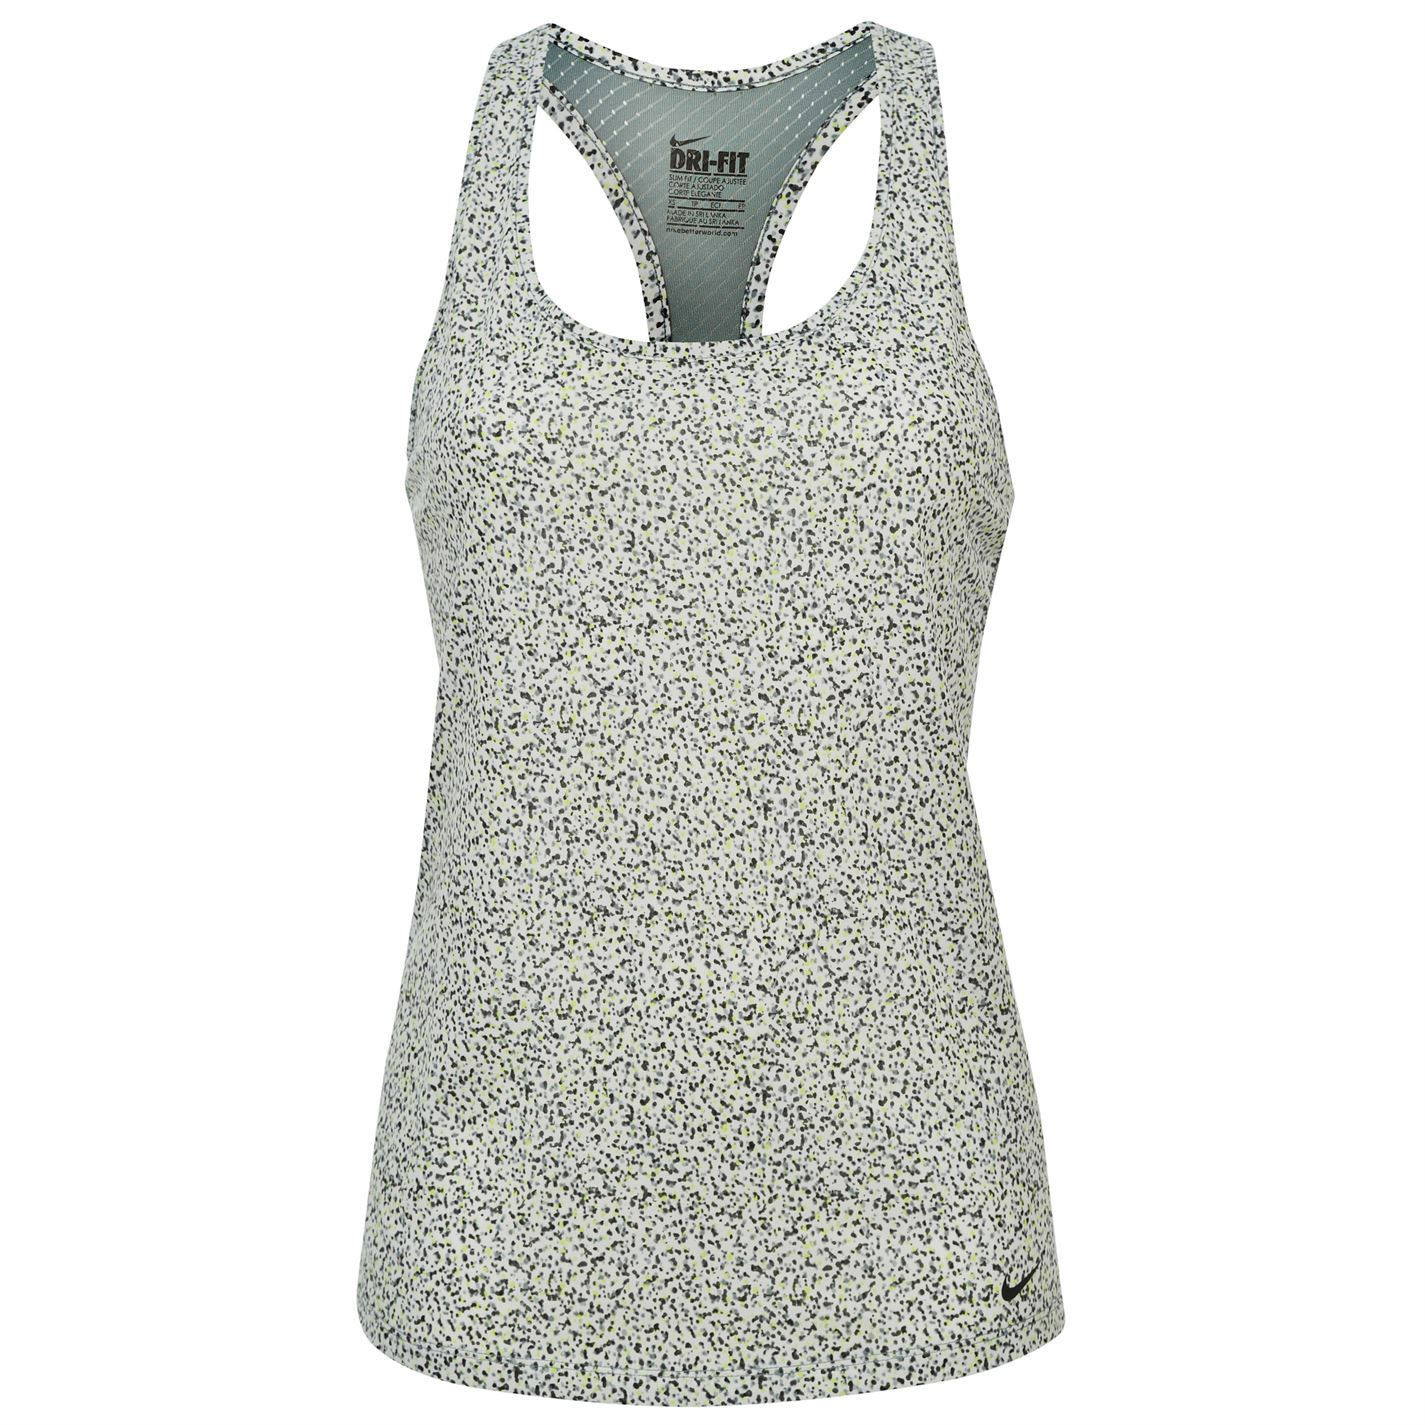 Nike Balance Running Tank Top Ladies | Sweatshop